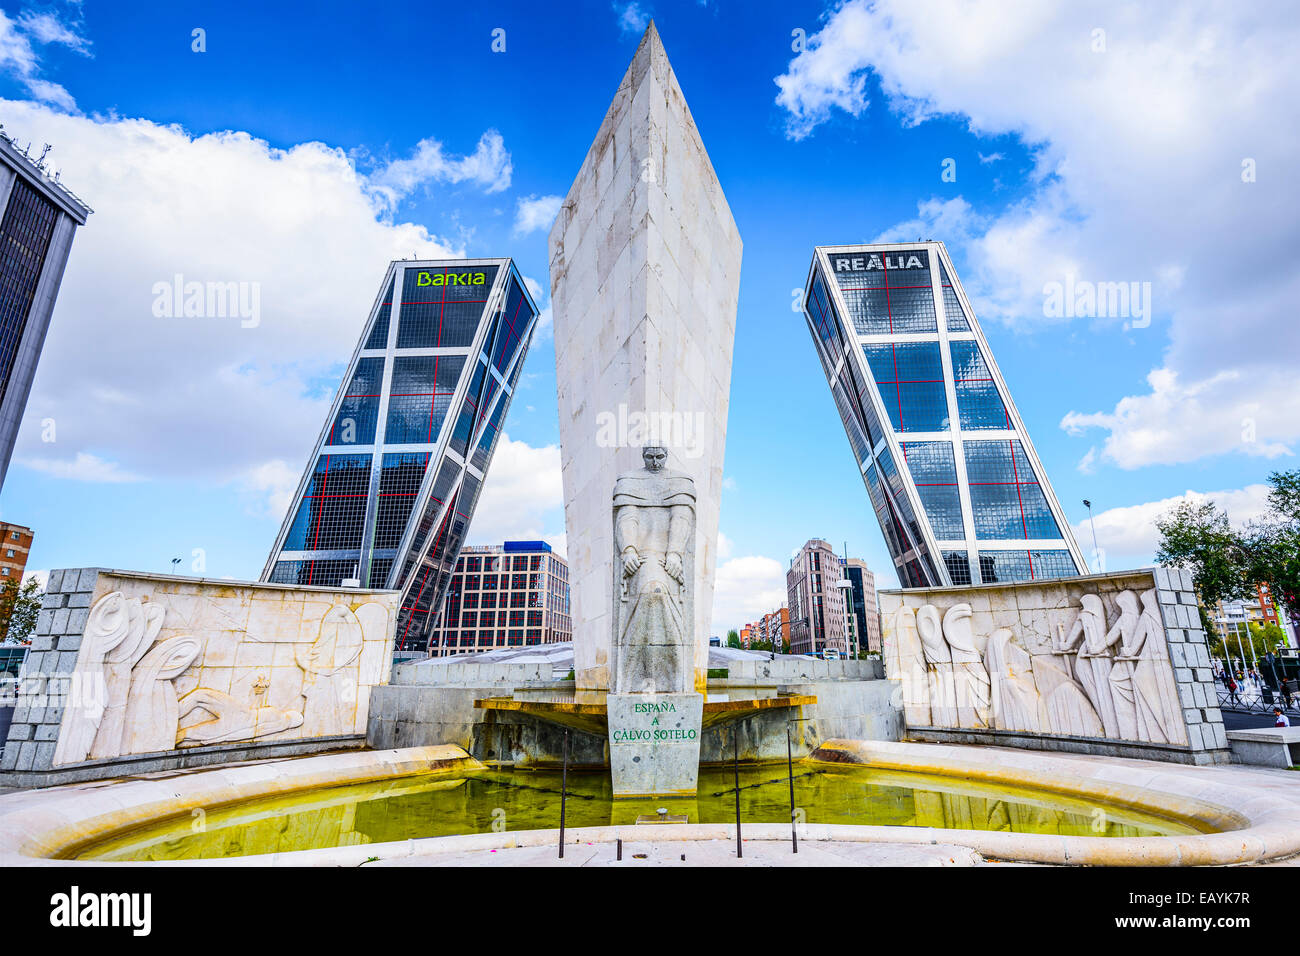 Puerta De Europa towers as viewed from Plaza de Castilla. - Stock Image